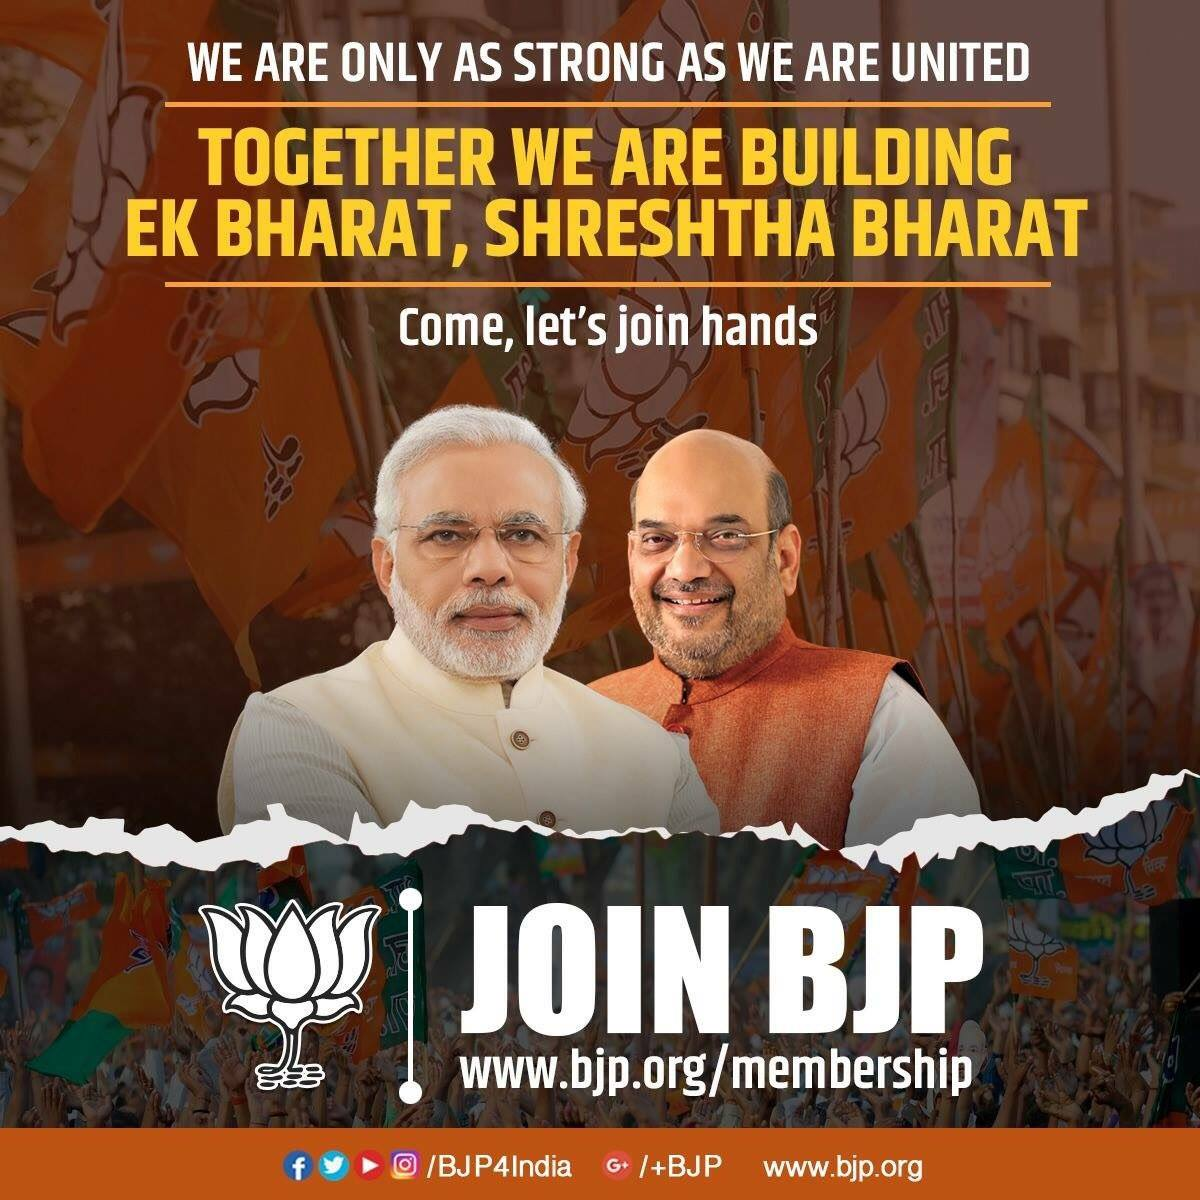 Let us support the movement to build a 'New India'. #JoinBJP and strengthen our hands in the mission. Join at https://t.co/jFIcYLfre3